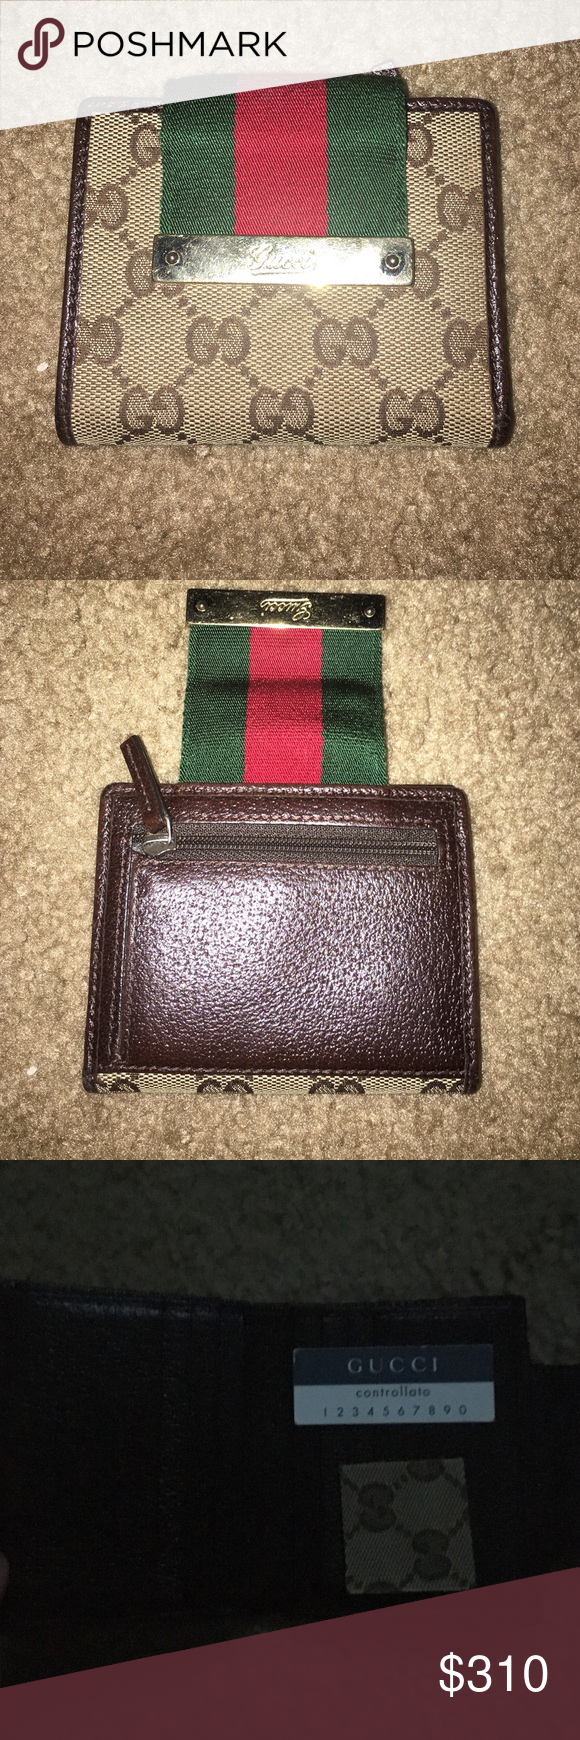 Authentic Gucci wallet Good Condition, Authentic, purchased at Gucci store in International Mall, Tampa FL. Gucci Bags Wallets